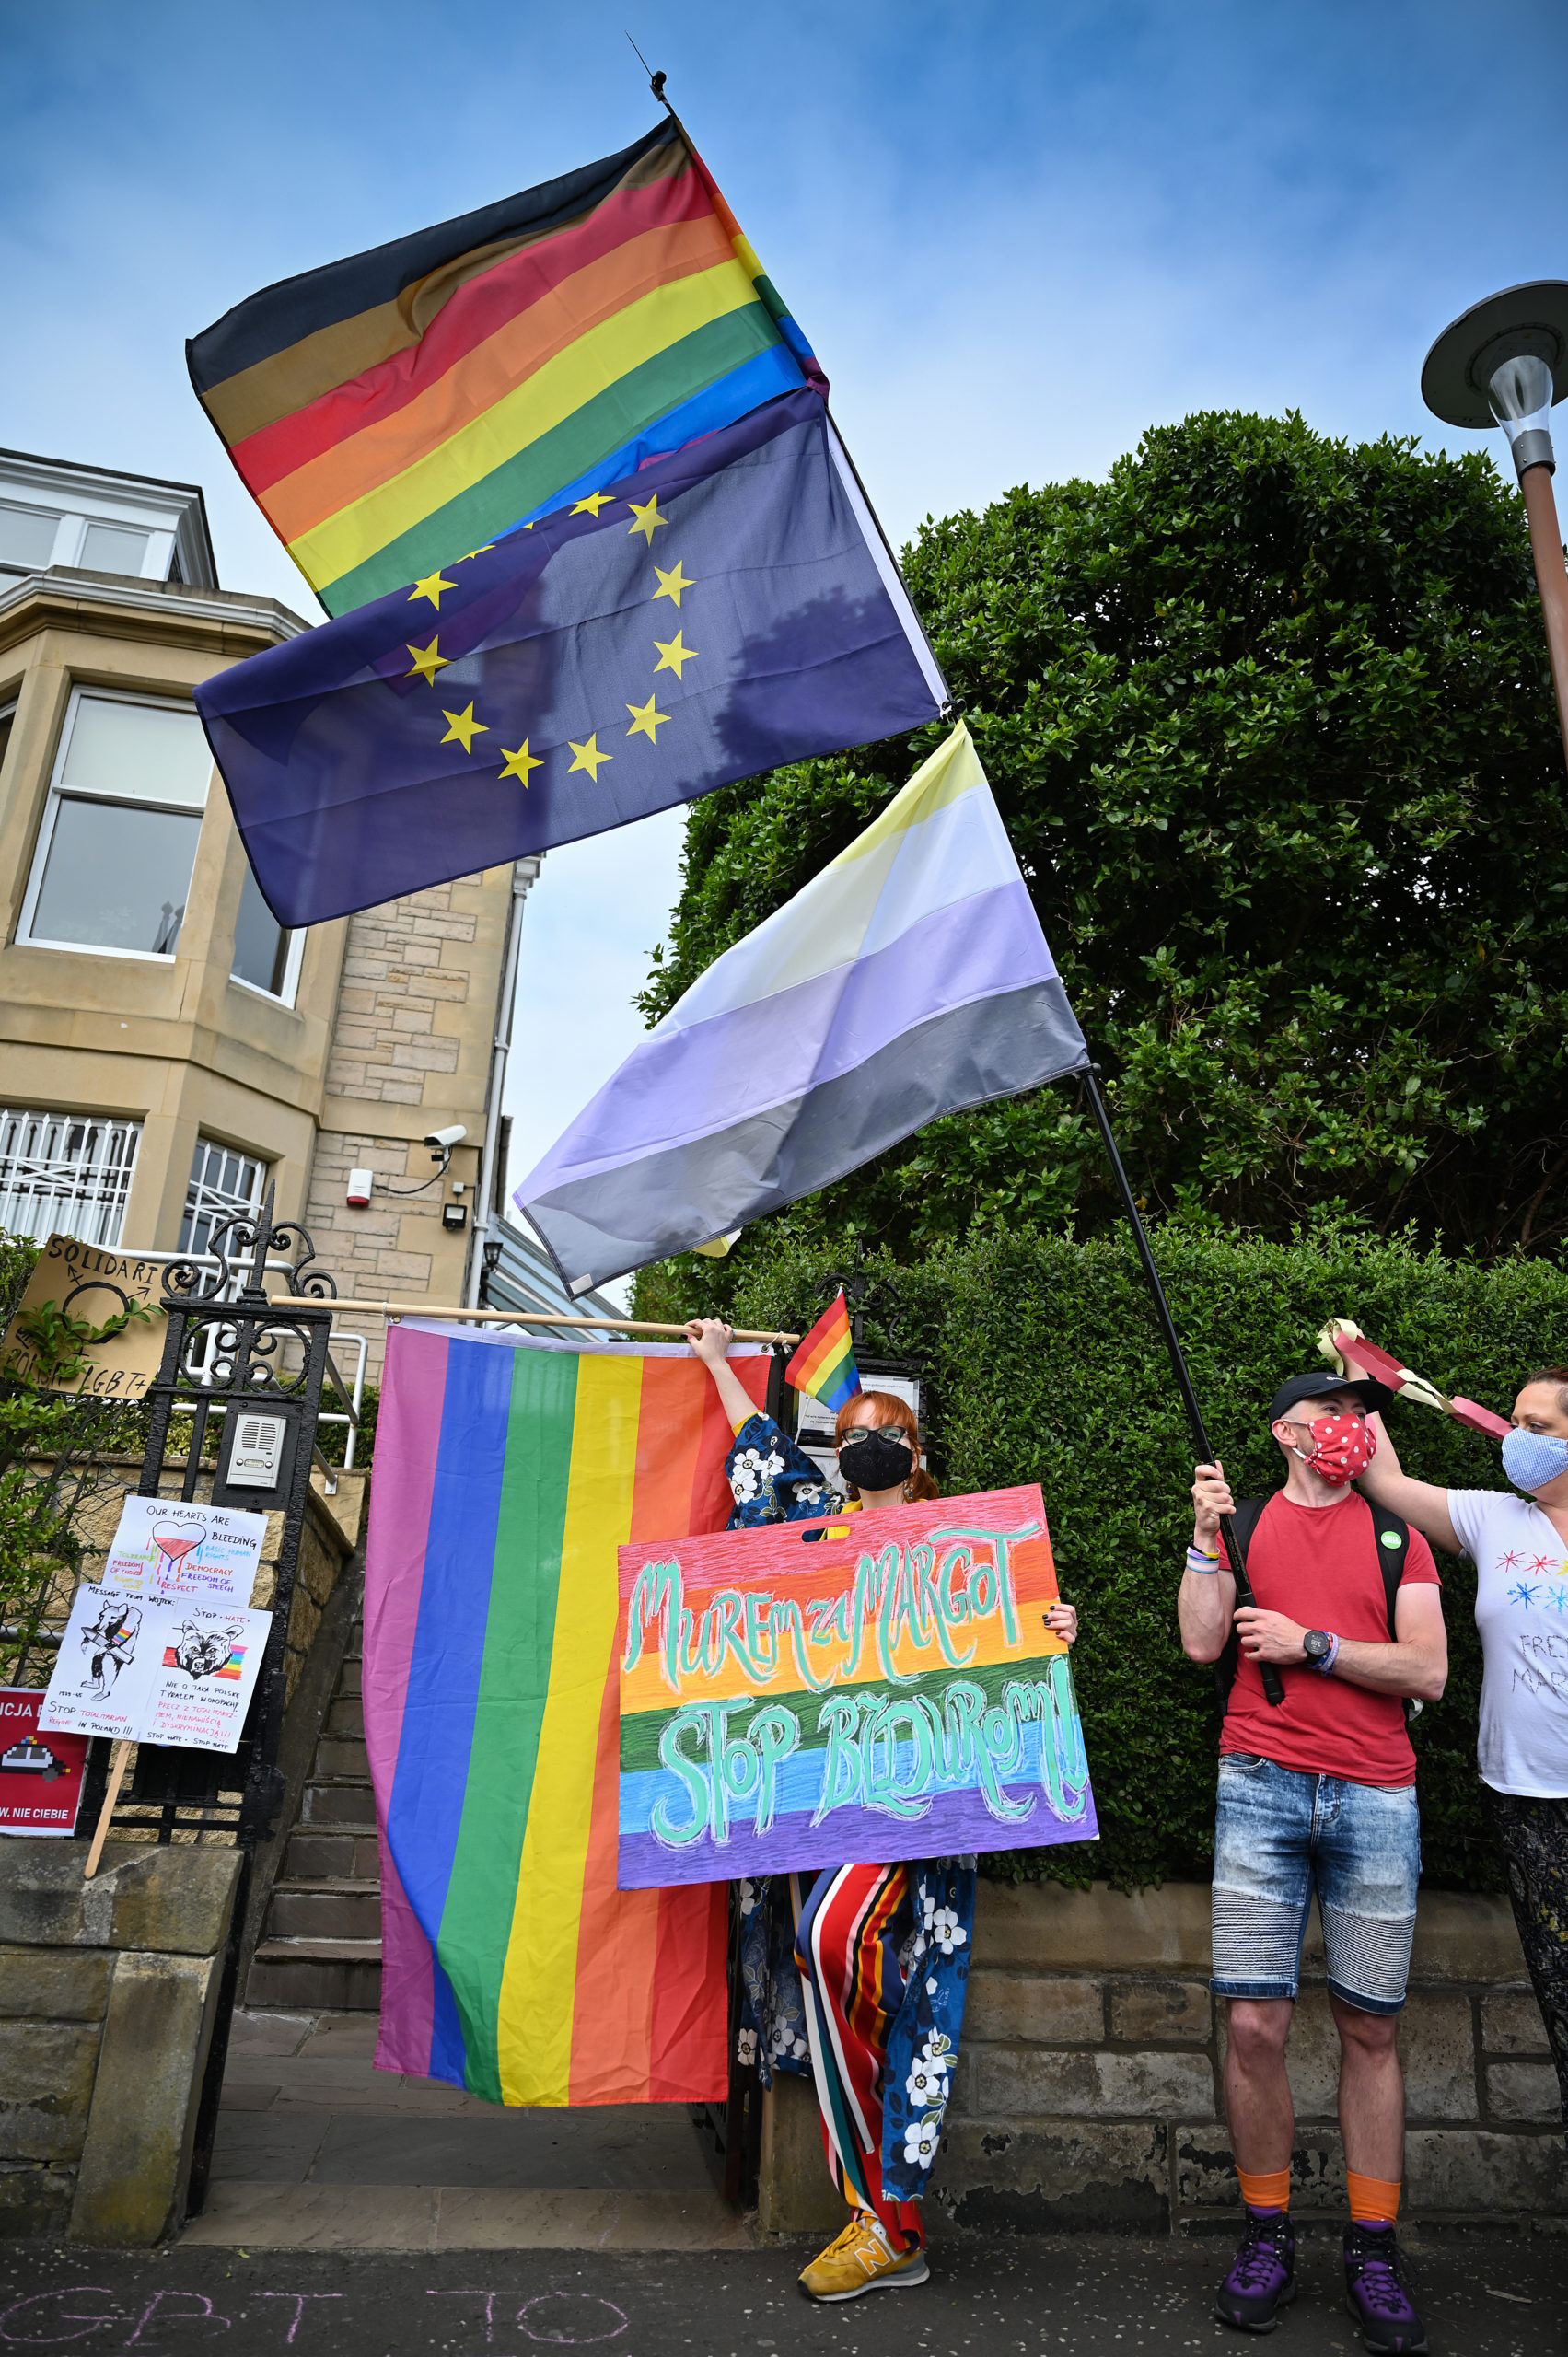 Edinburgh LGBT+ rights protest outside polish consulate